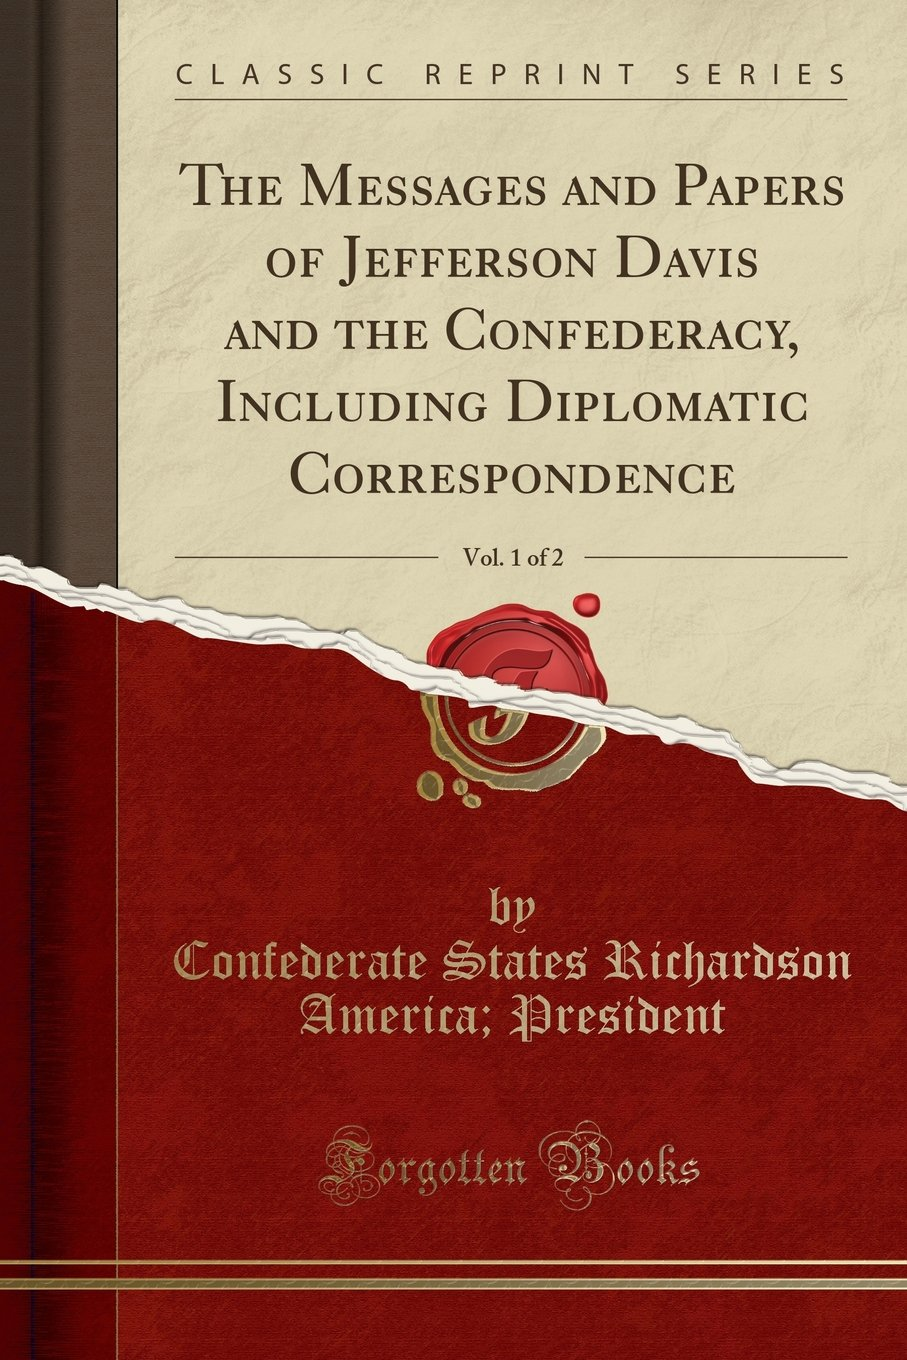 Download The Messages and Papers of Jefferson Davis and the Confederacy, Including Diplomatic Correspondence, Vol. 1 of 2 (Classic Reprint) PDF